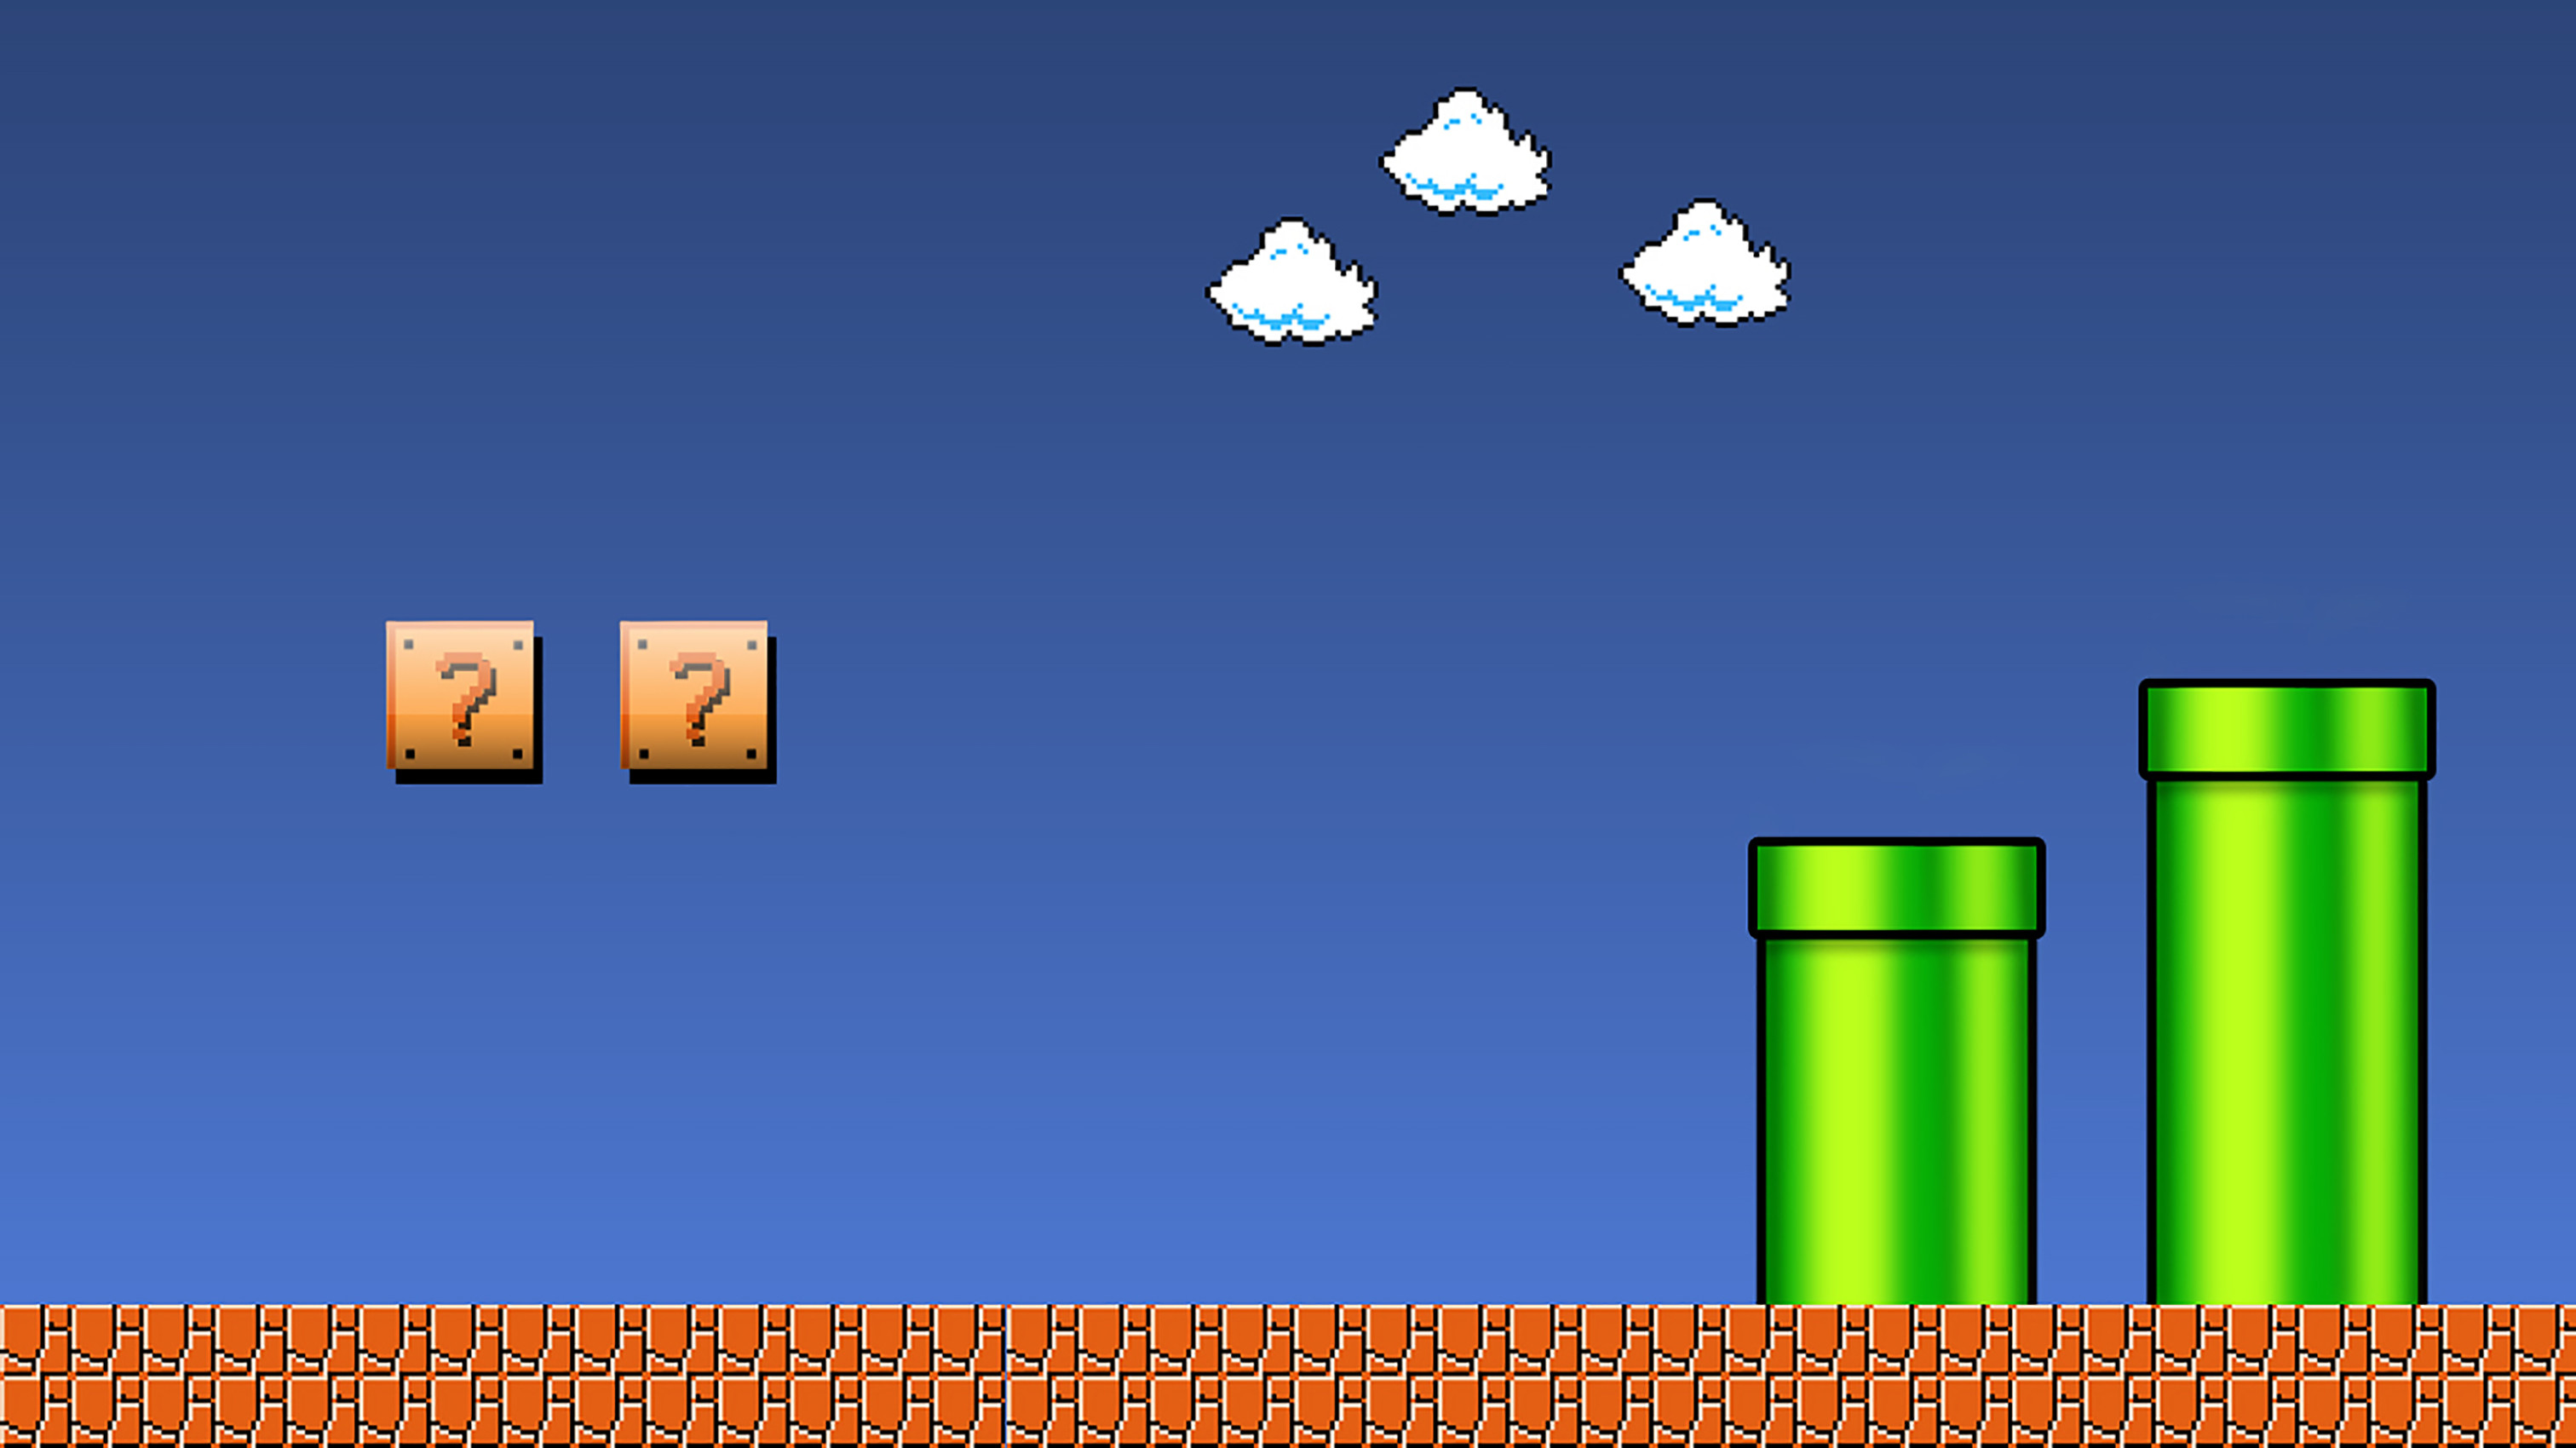 3024x1700 Super Mario Brothers Wallpaper created in Photoshop